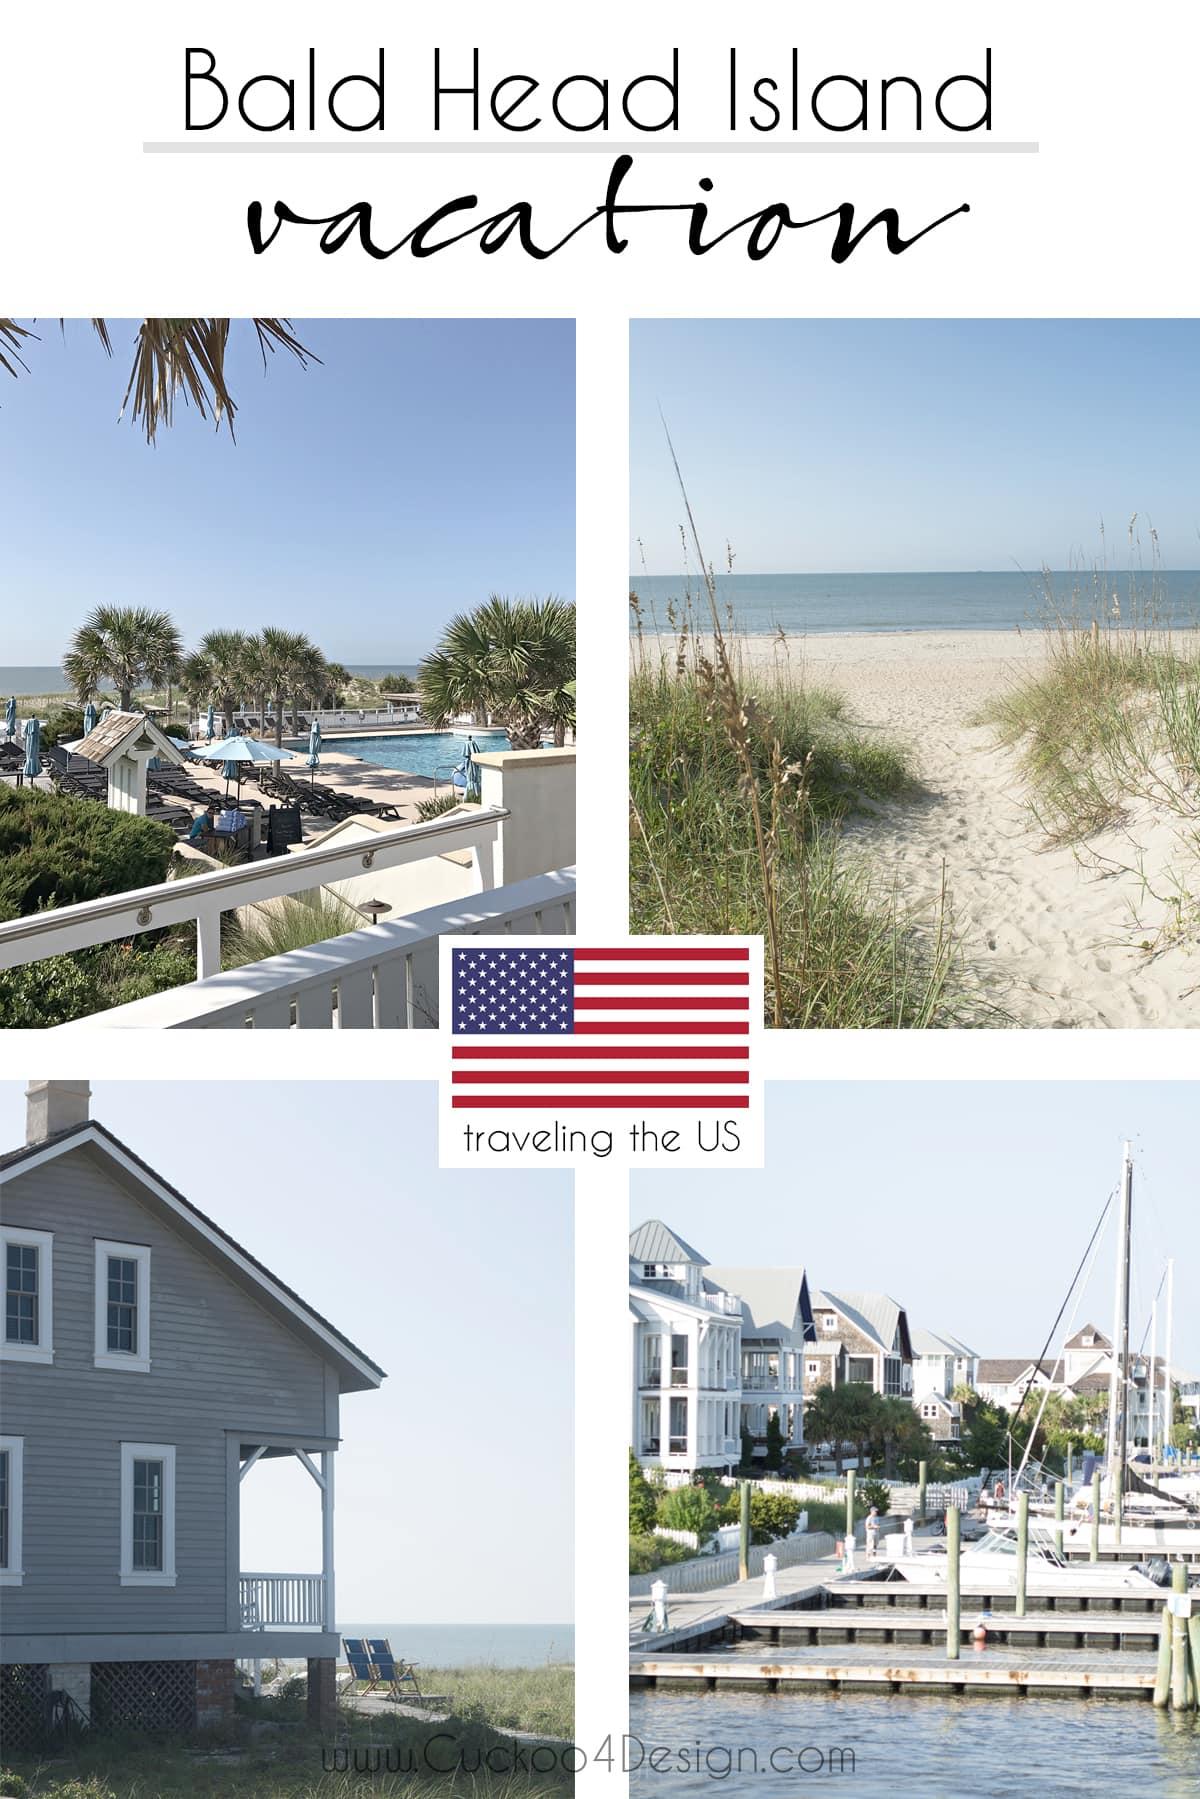 Bald Head Island Vacation | United States Beach Vacations | Traveling within the US